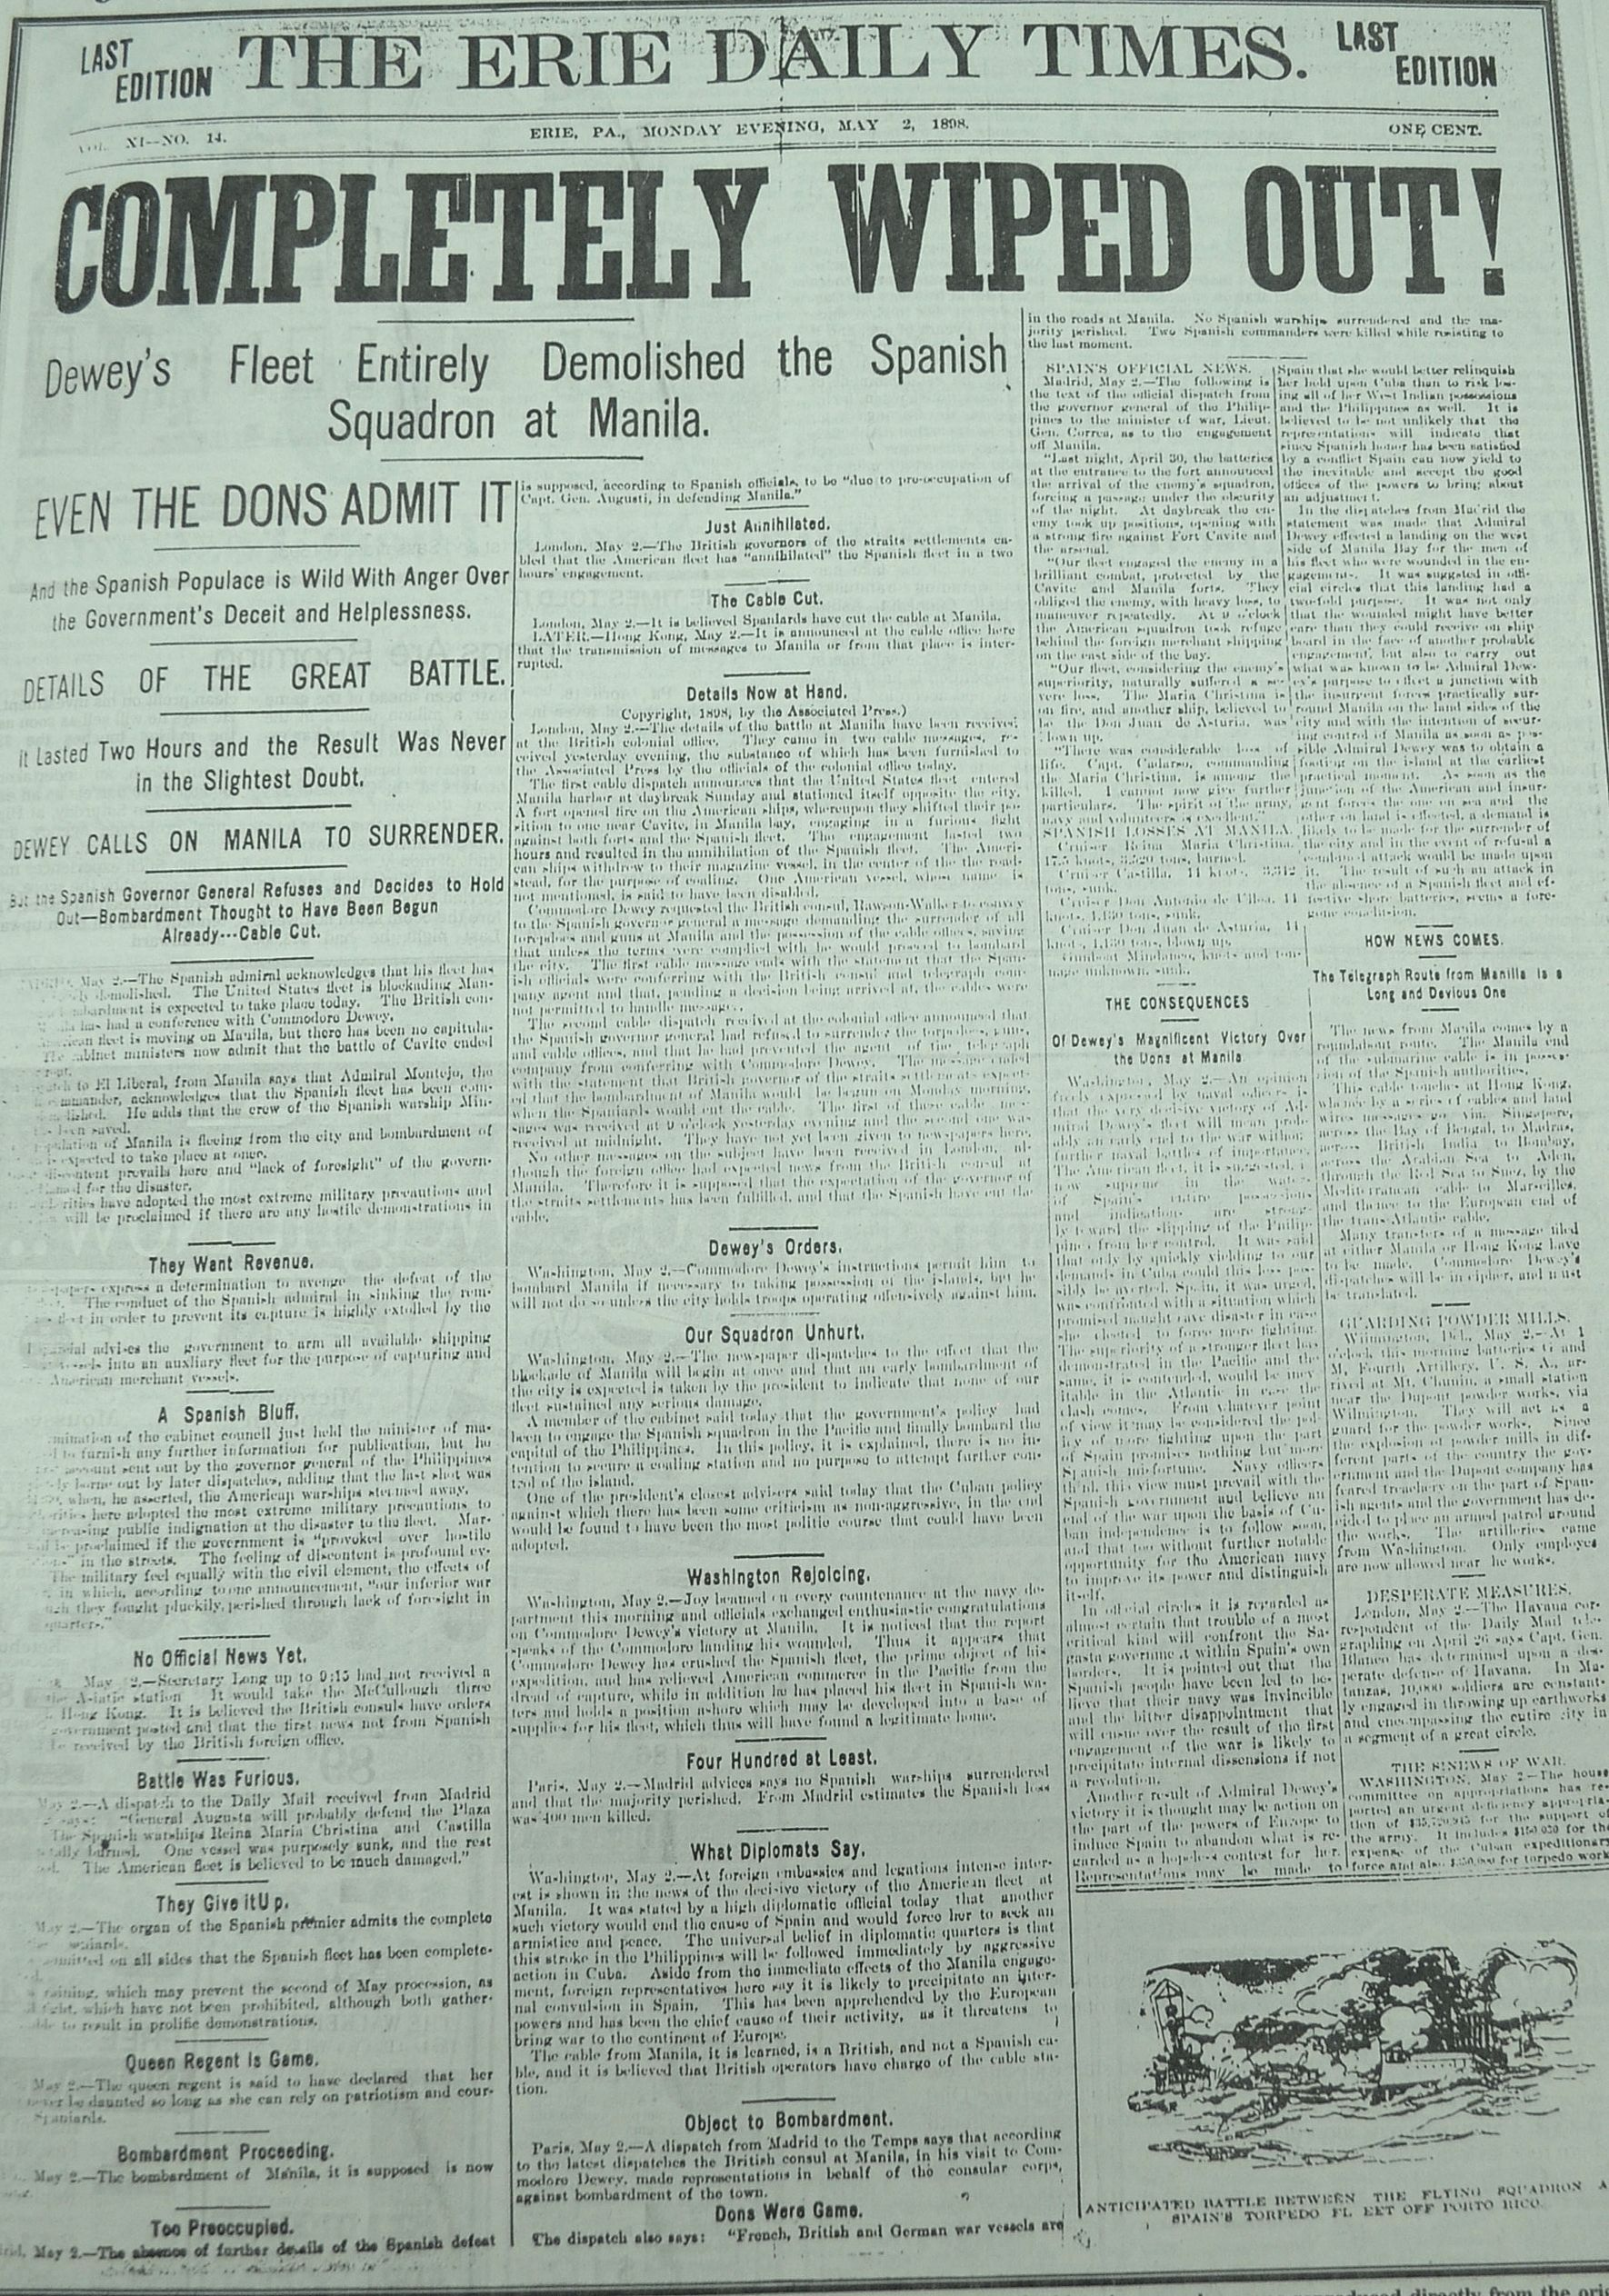 This Front Page Details The Battle Of Manila Bay Fought During The